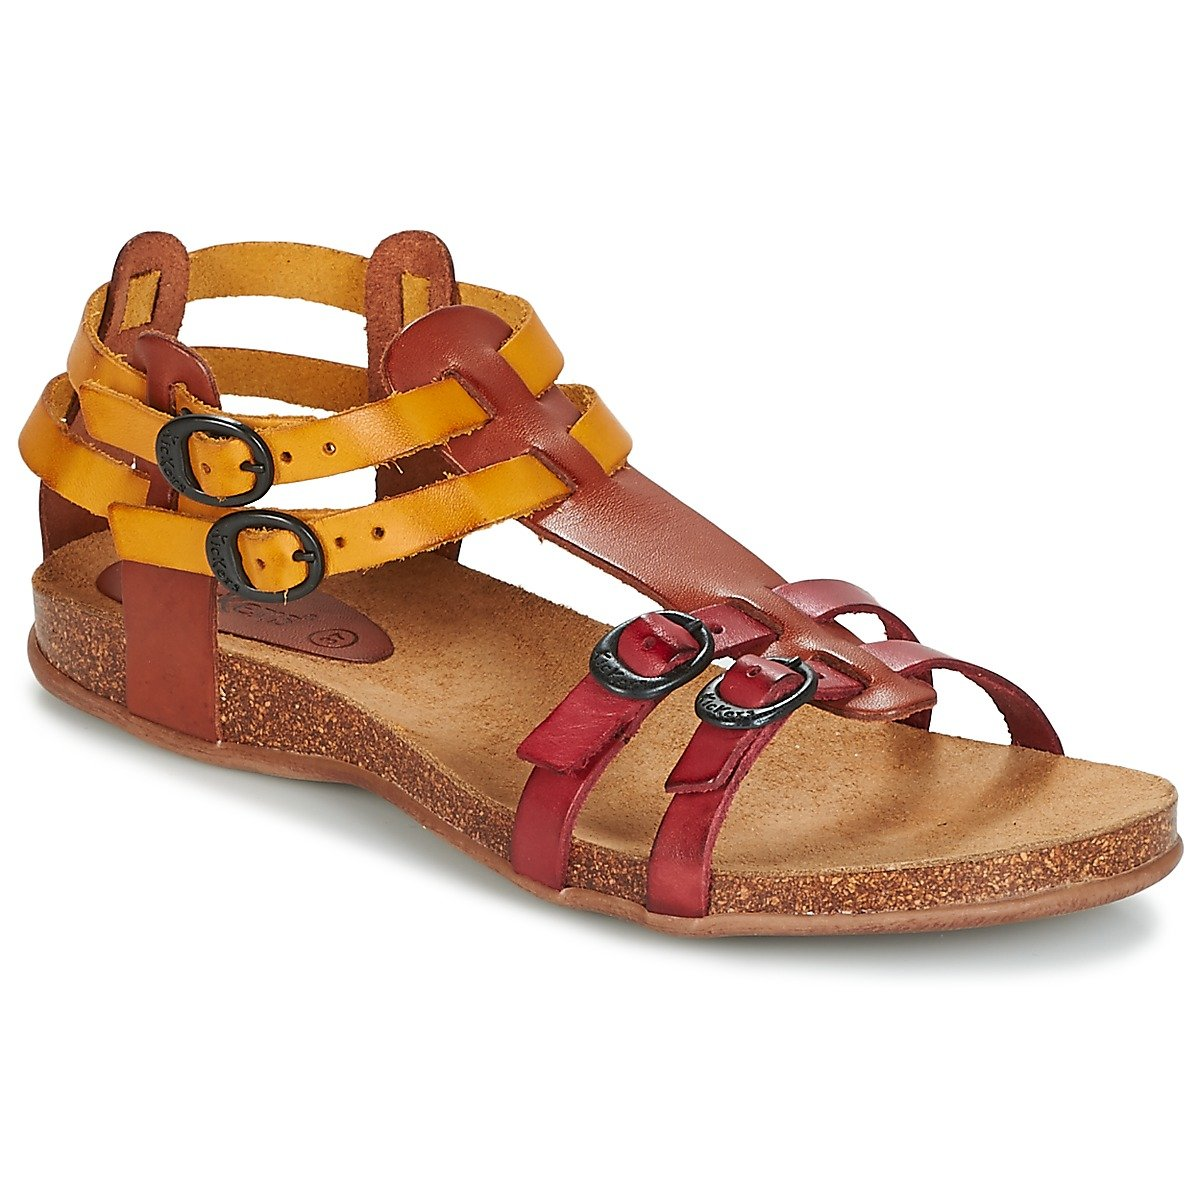 Kickers Femme Ana, Sandales Sandales Ana, Femme Rouge fb15ba3 - automatisms.space